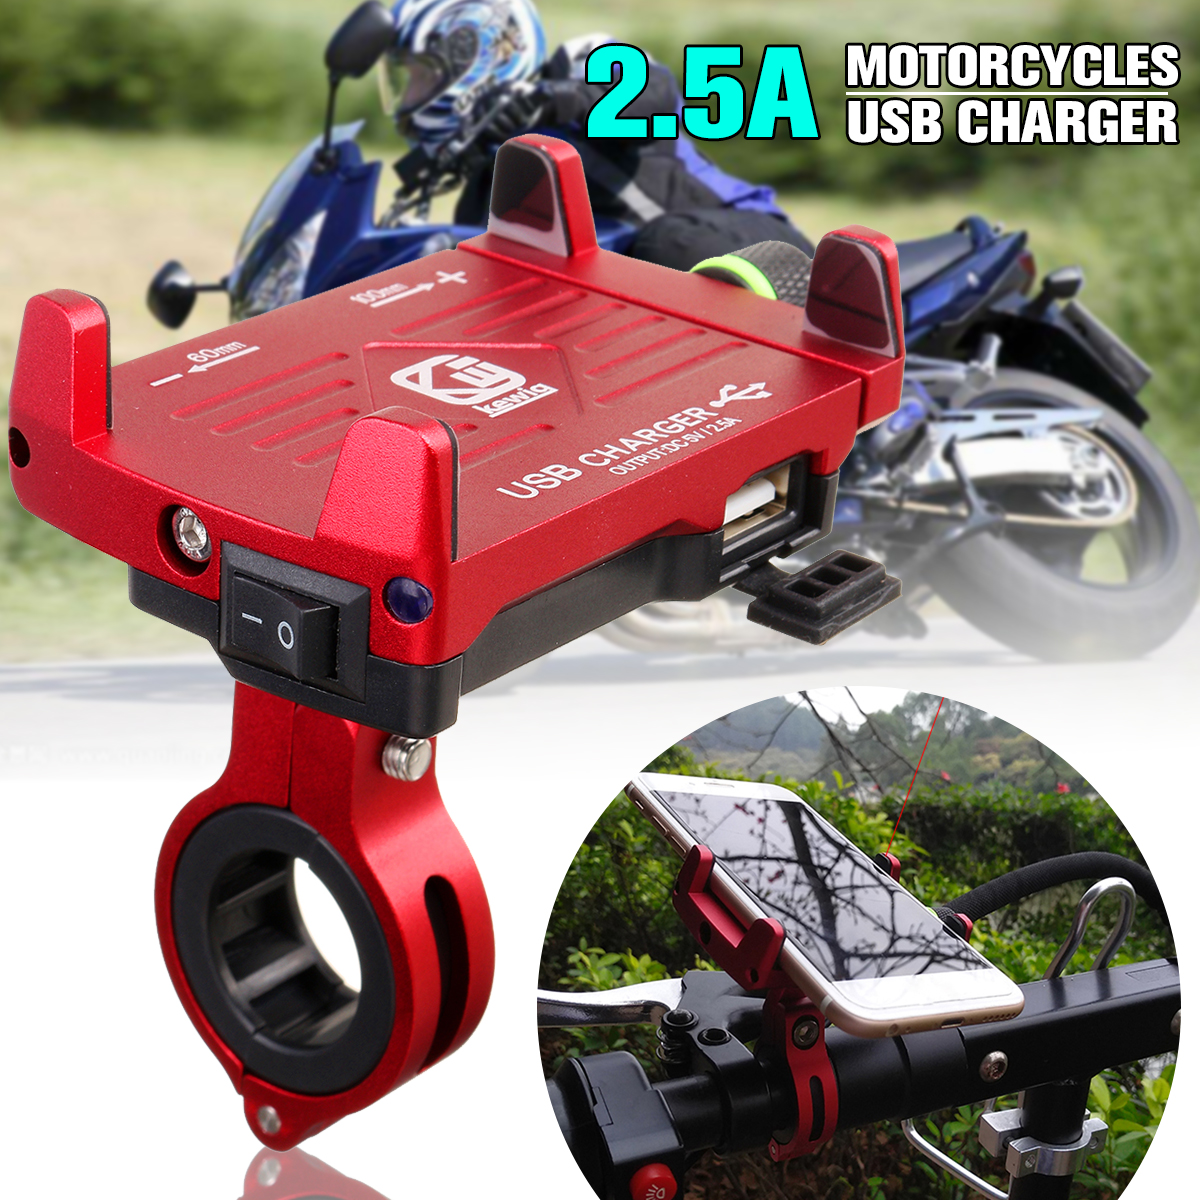 Aluminum USB Fast Charing Charger Motorcycle Phone Holder Stand for Motocycle Bike Handlebar Holder for 3.5''-6.2'' Smartphone